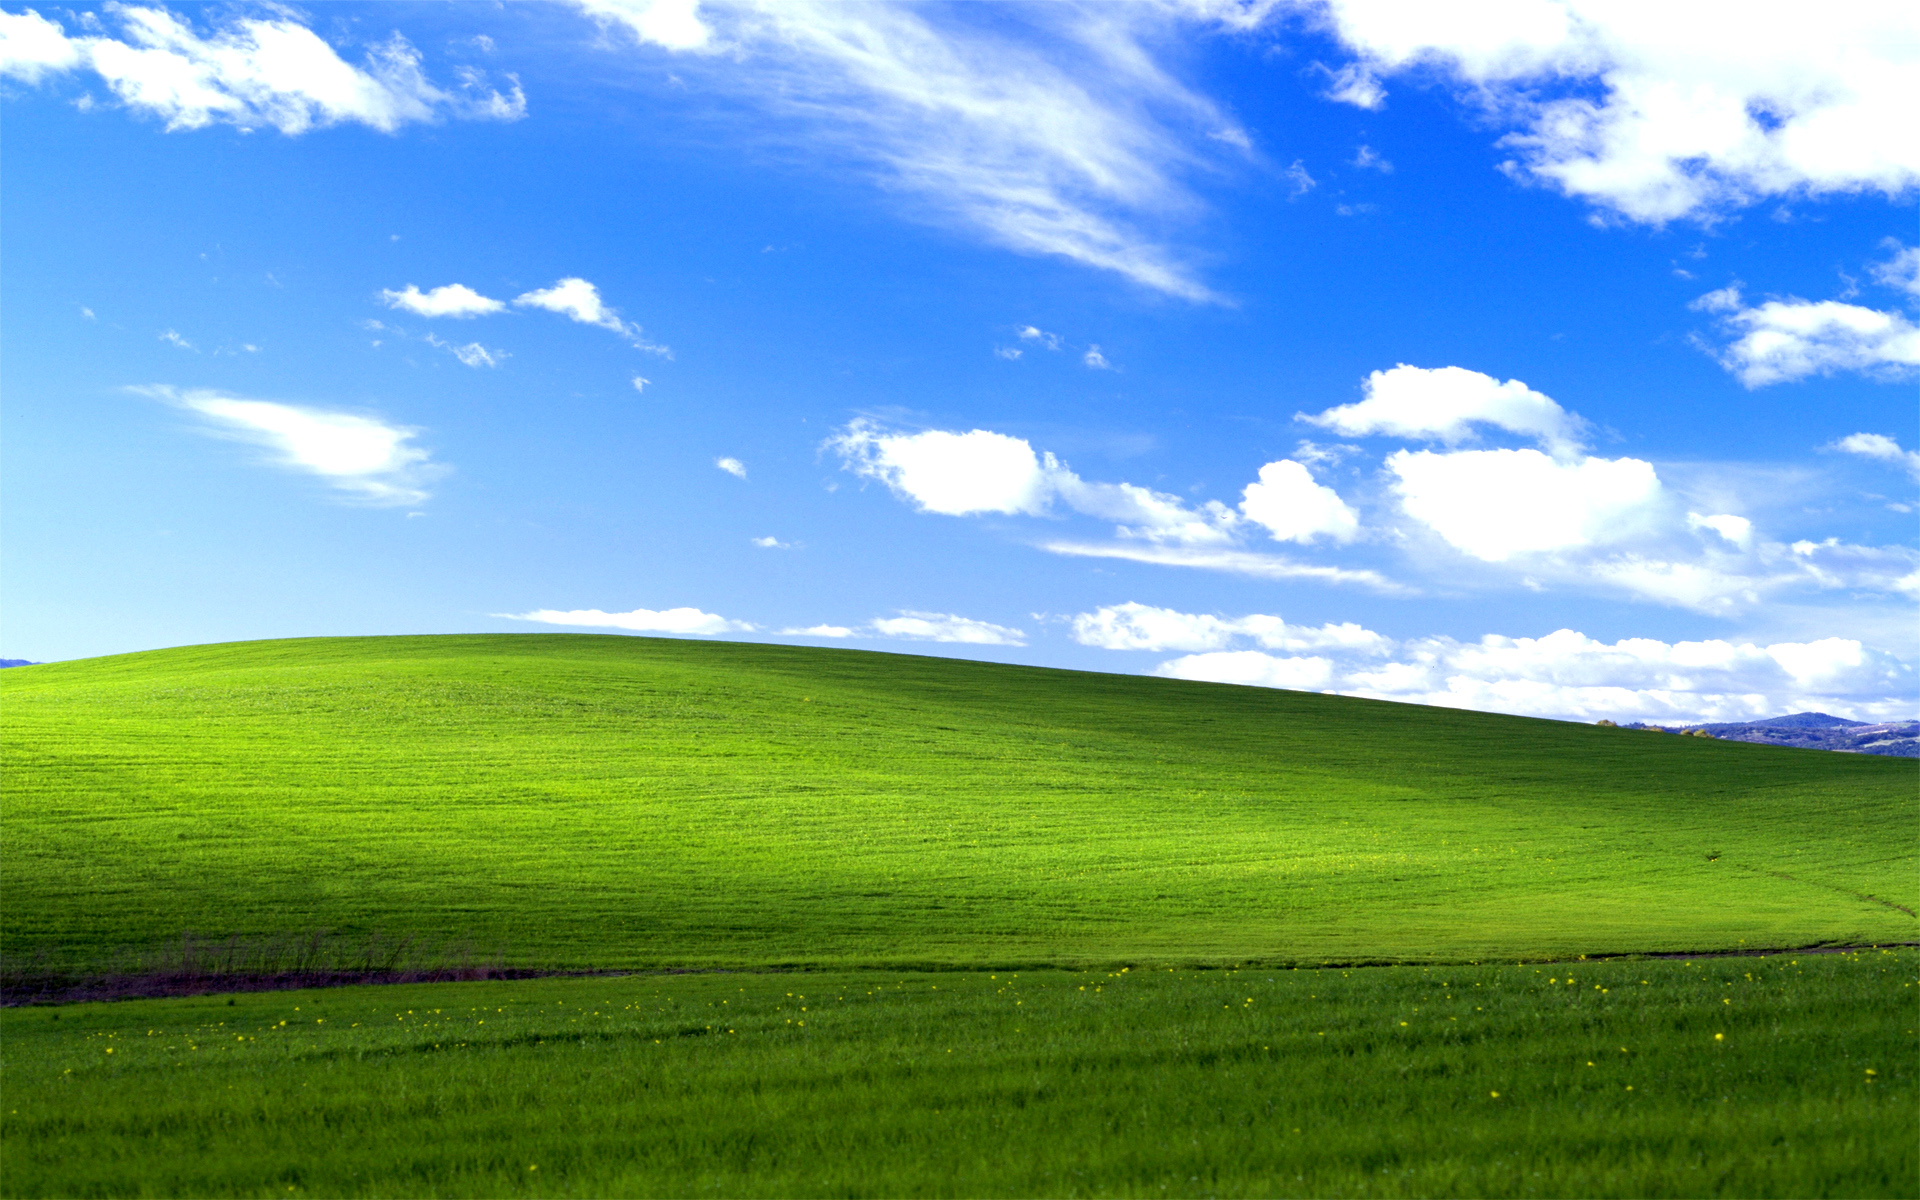 Windows Field Wallpaper